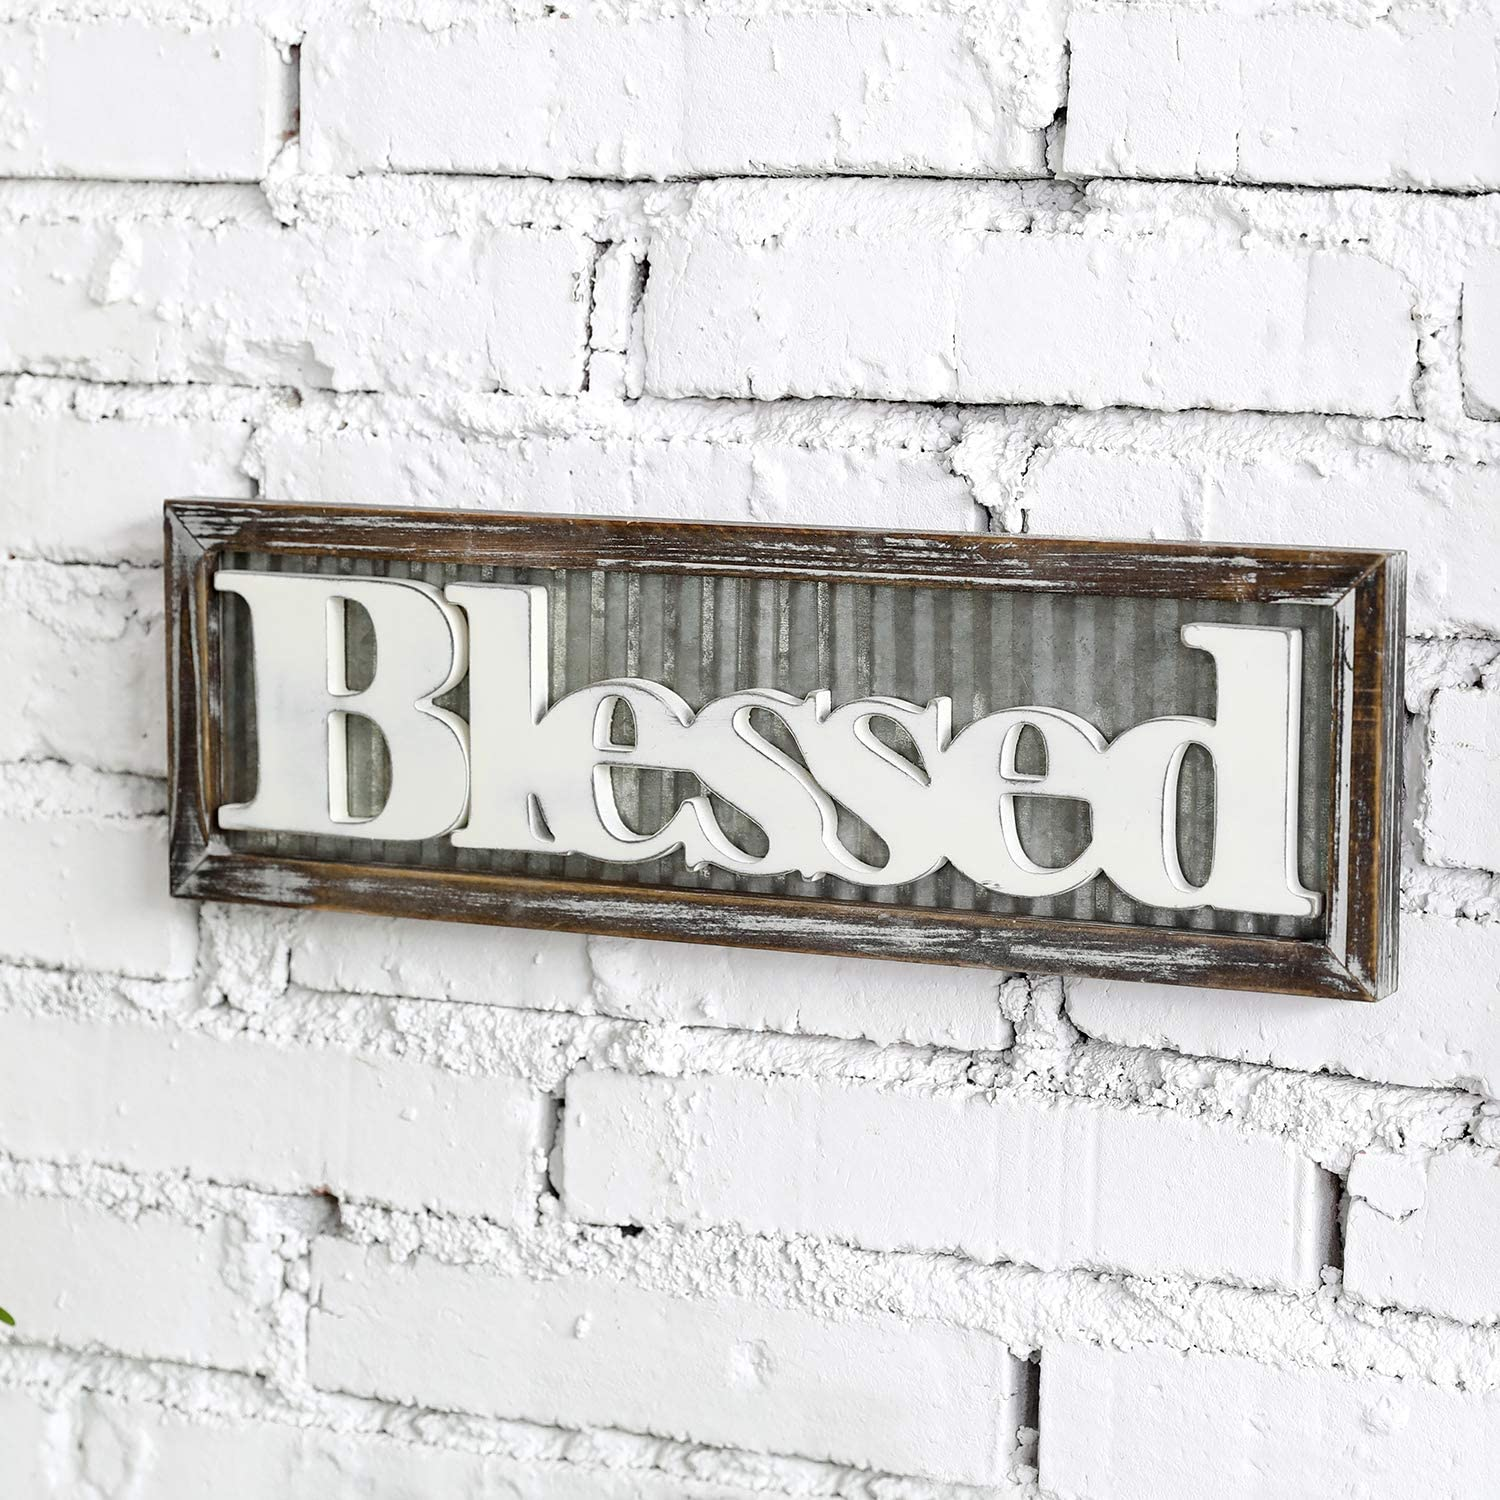 MyGift Blessed Vintage White Wood Wall Art Hanging Sign Decoration with Rustic Corrugated Galvanized Metal & Torched Wooden Frame